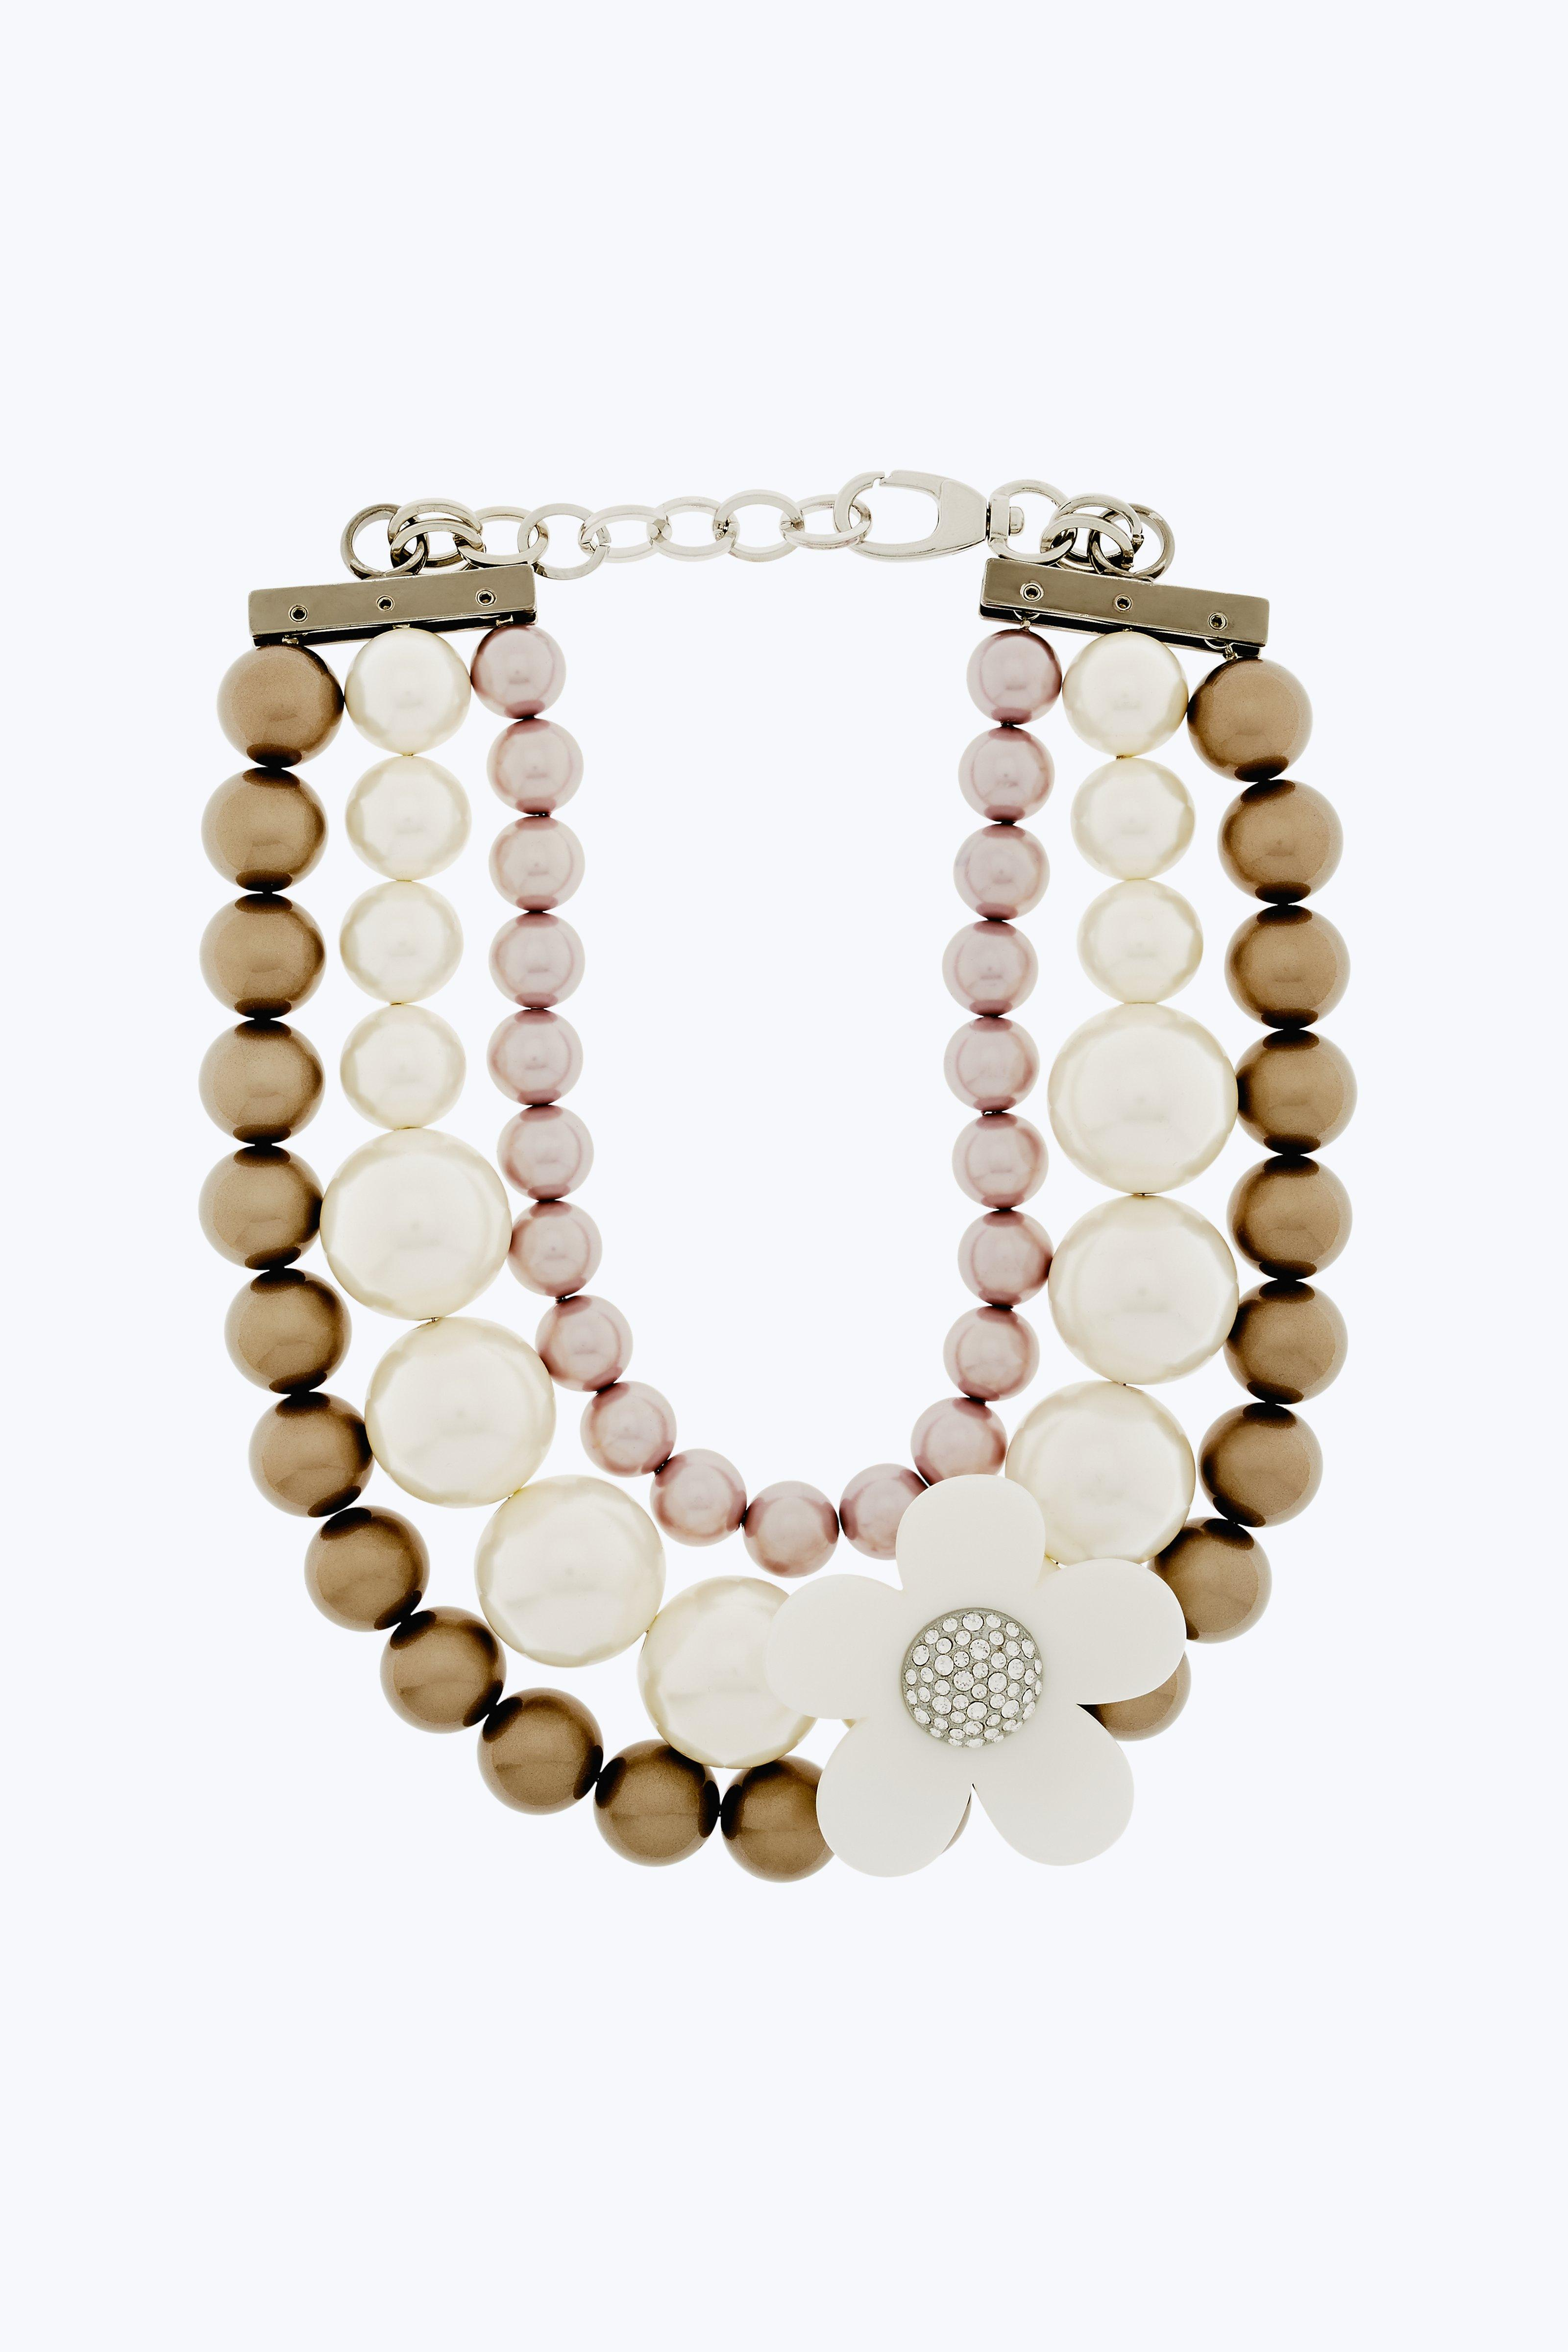 Marc Jacobs Necklaces Daisy Pearl Necklace